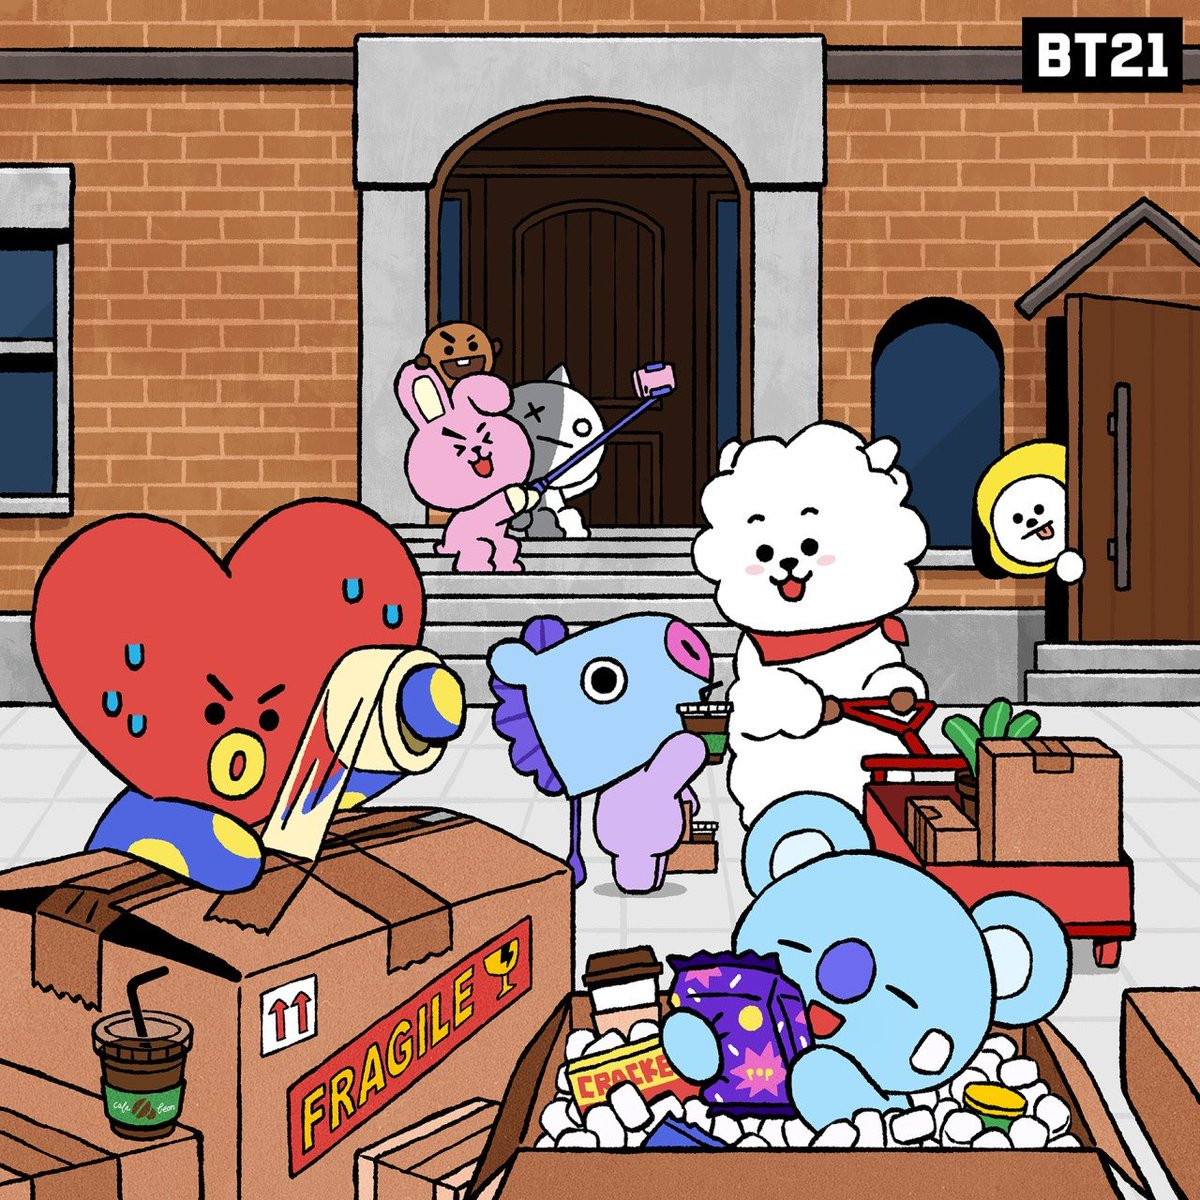 Move-in day! We'd better get this moving  #BASECAMP #BT21_UNIVERSE #BT21